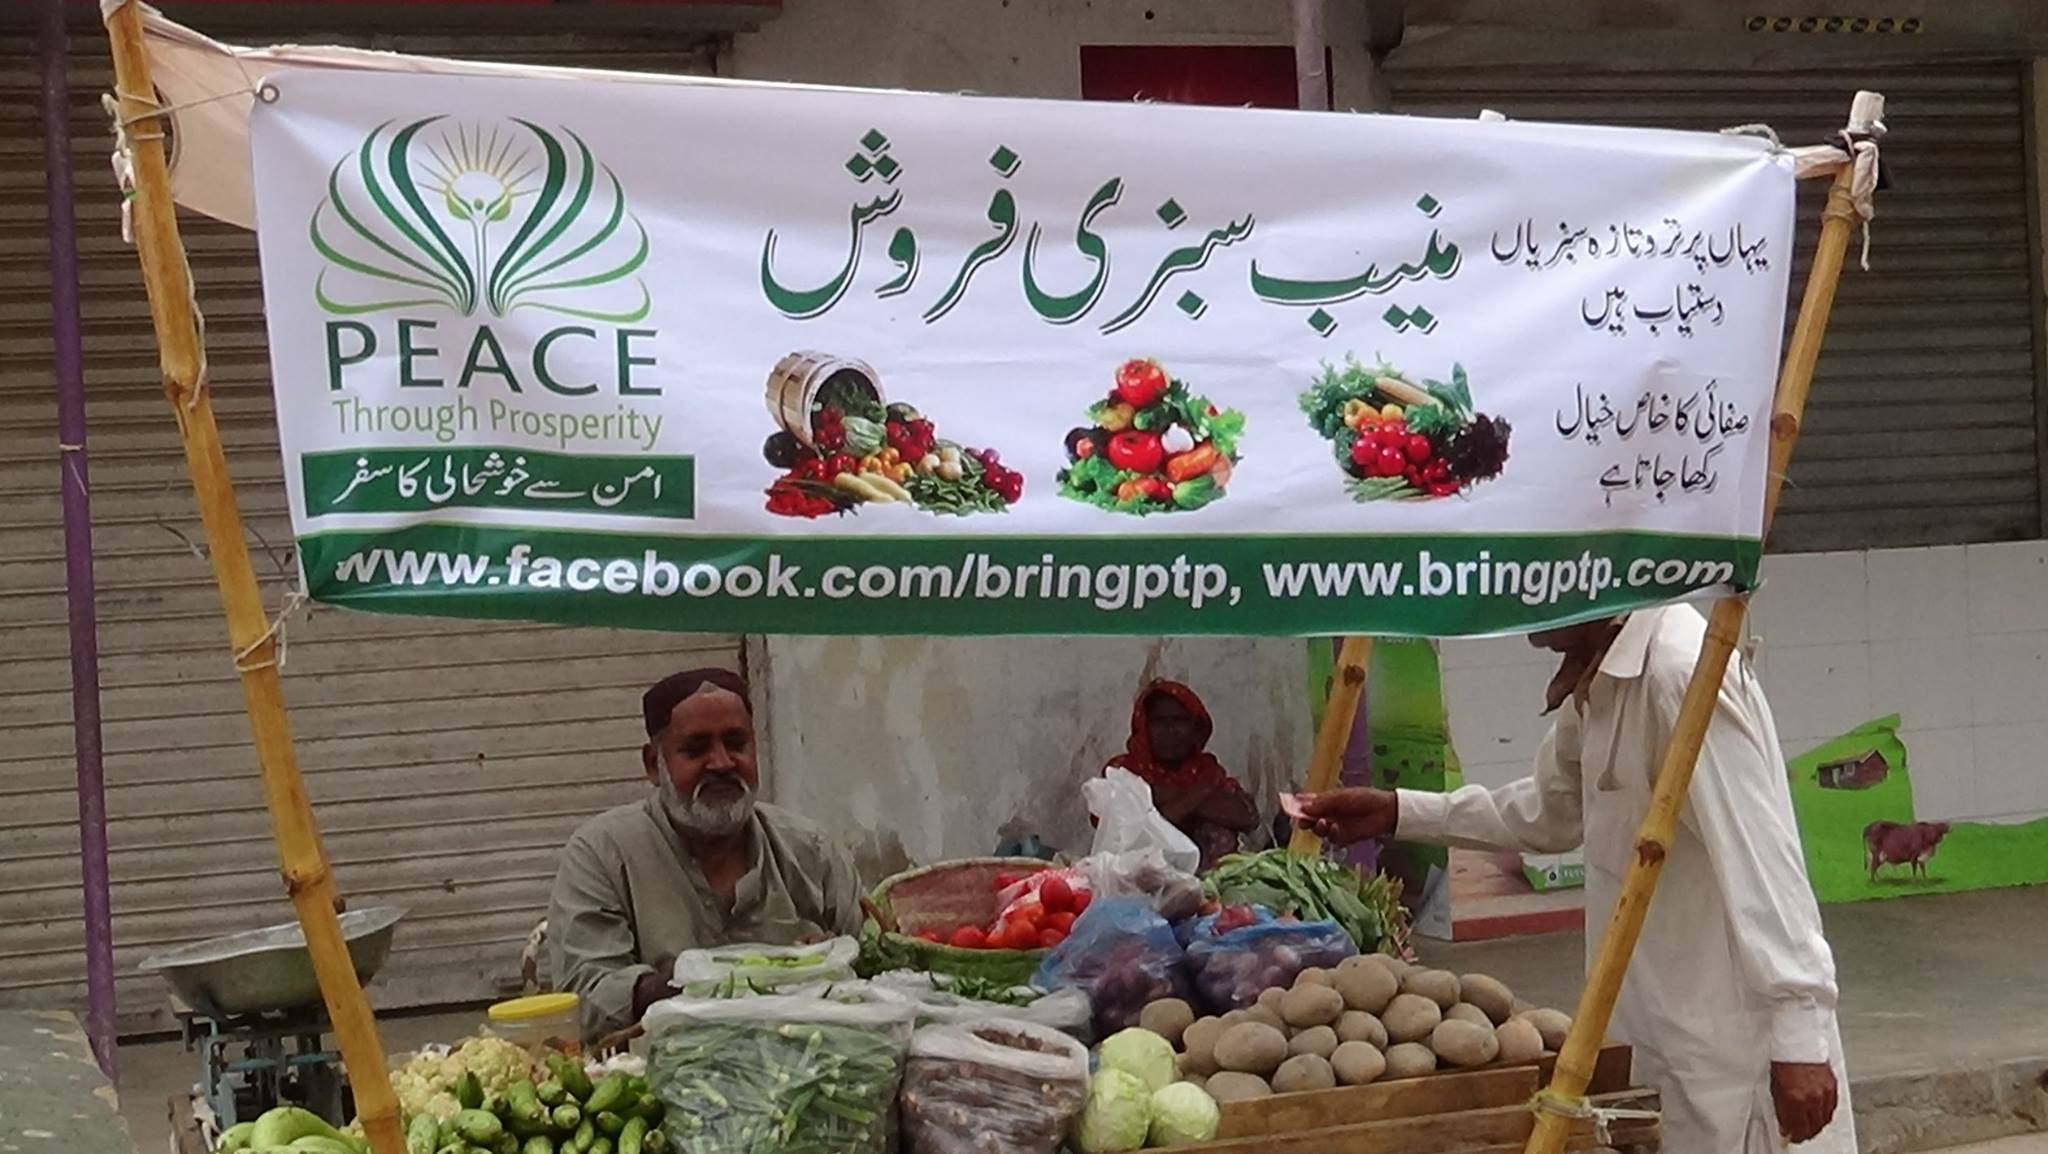 Munib, after attending the mini-MBA program, is now able to have a better set-up for his business and his identity as a vegetable seller in the market